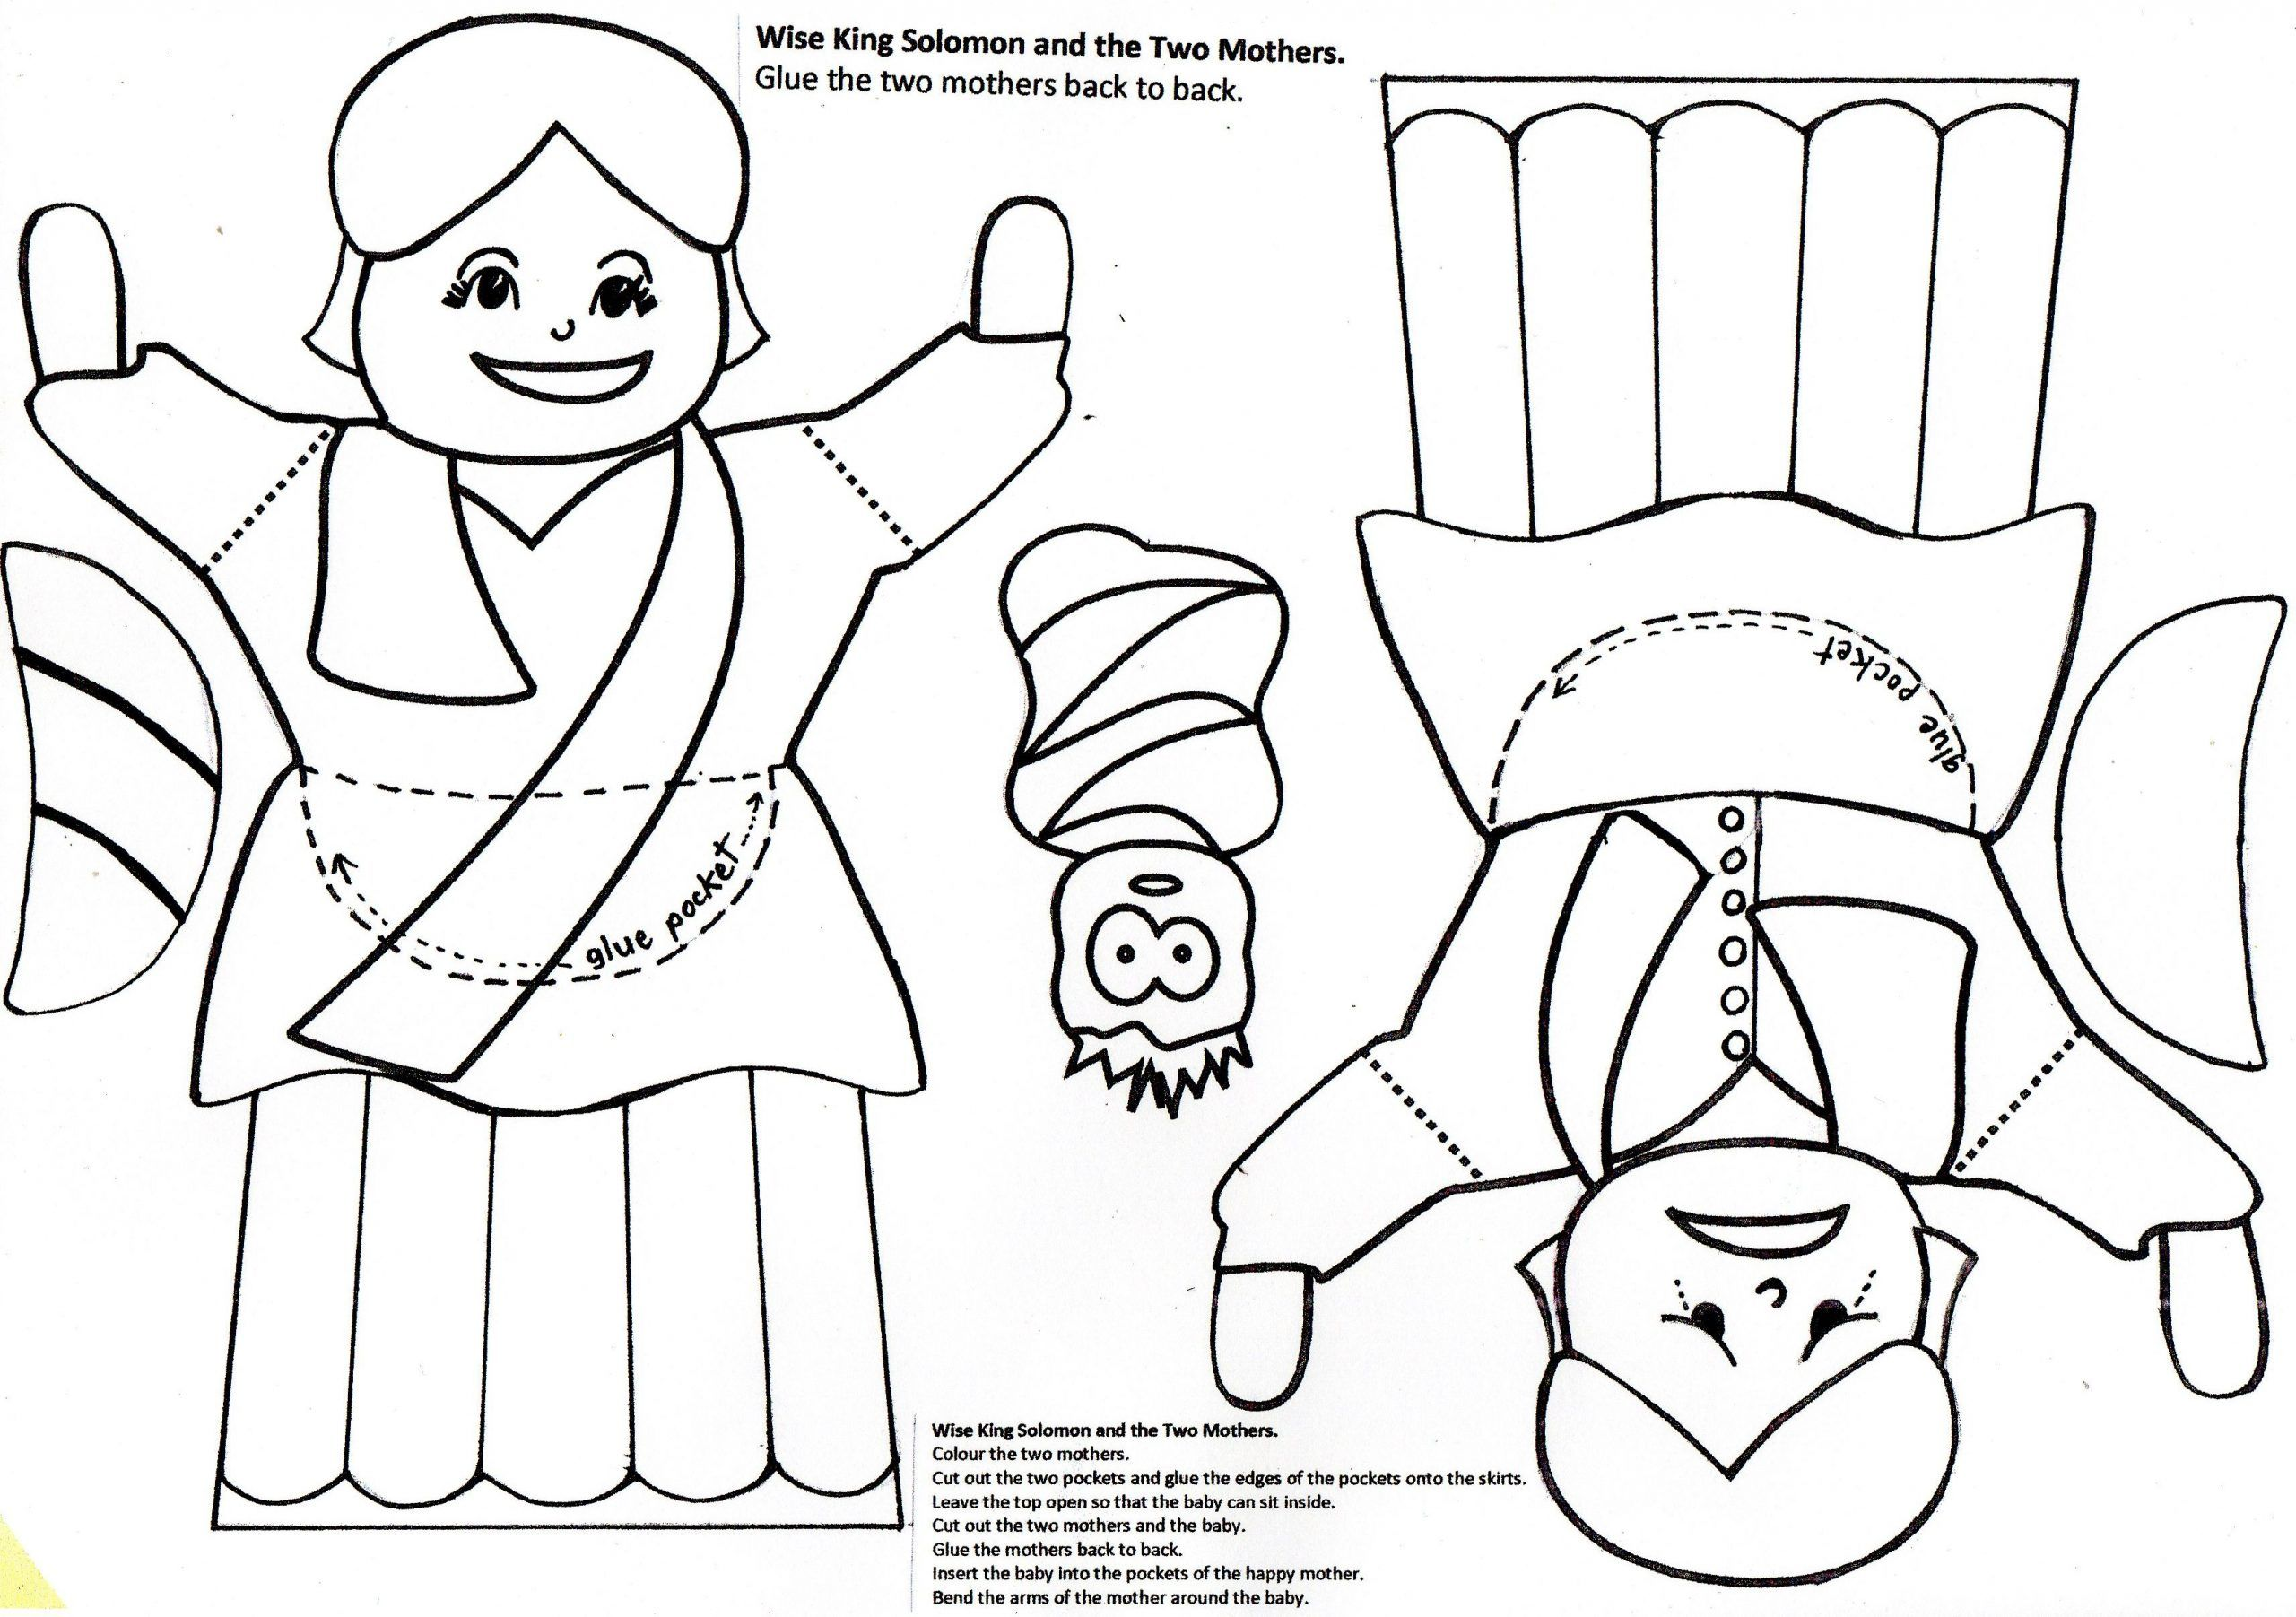 King Solomon Coloring Page Pages Printable Wisdom